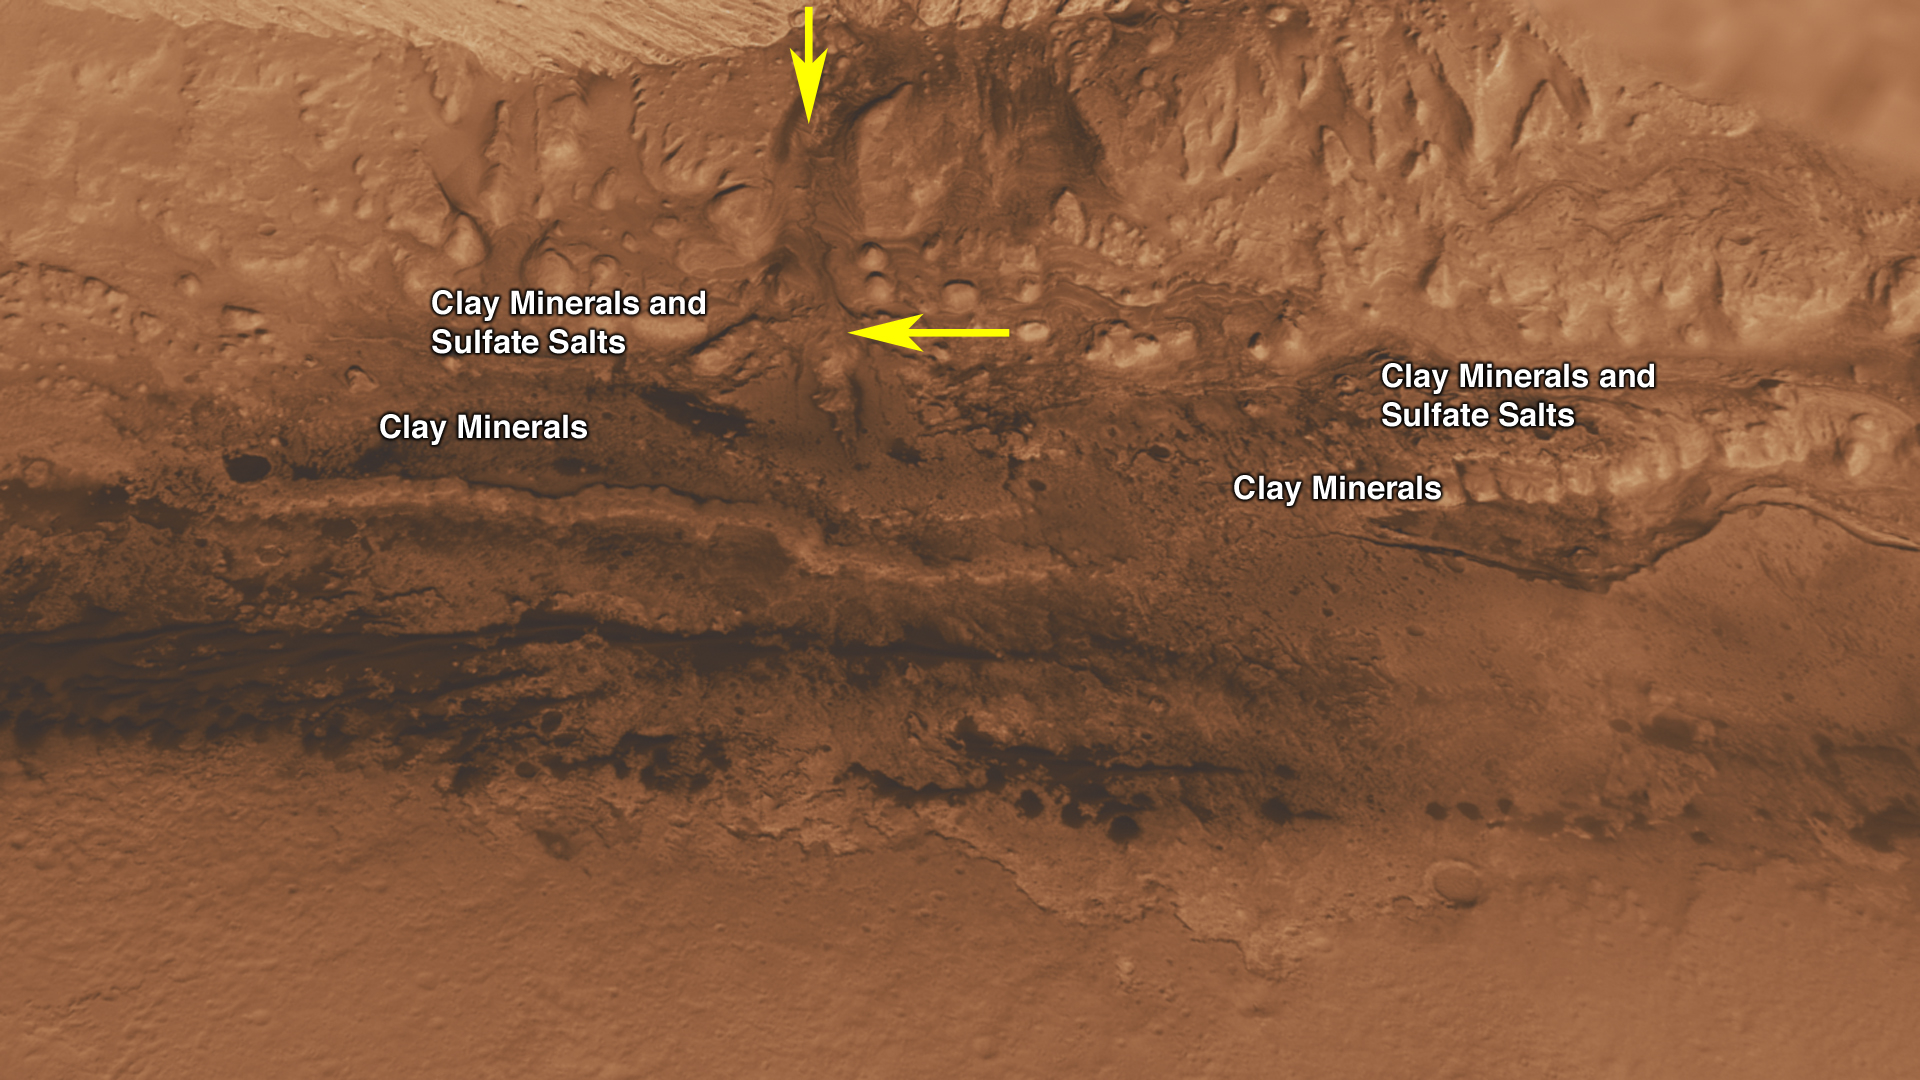 an analysis of the curiosity rover in nasas mars science laboratory mission The area curiosity has been analysing since 2012, as part of nasa's mars science laboratory mission, is composed primarily of sedimentary sequences deposited at the bottom of a lake 35 billion years ago these sediments contain various secondary minerals, such as clays or sulphates, which indicate that the primitive surface was in.